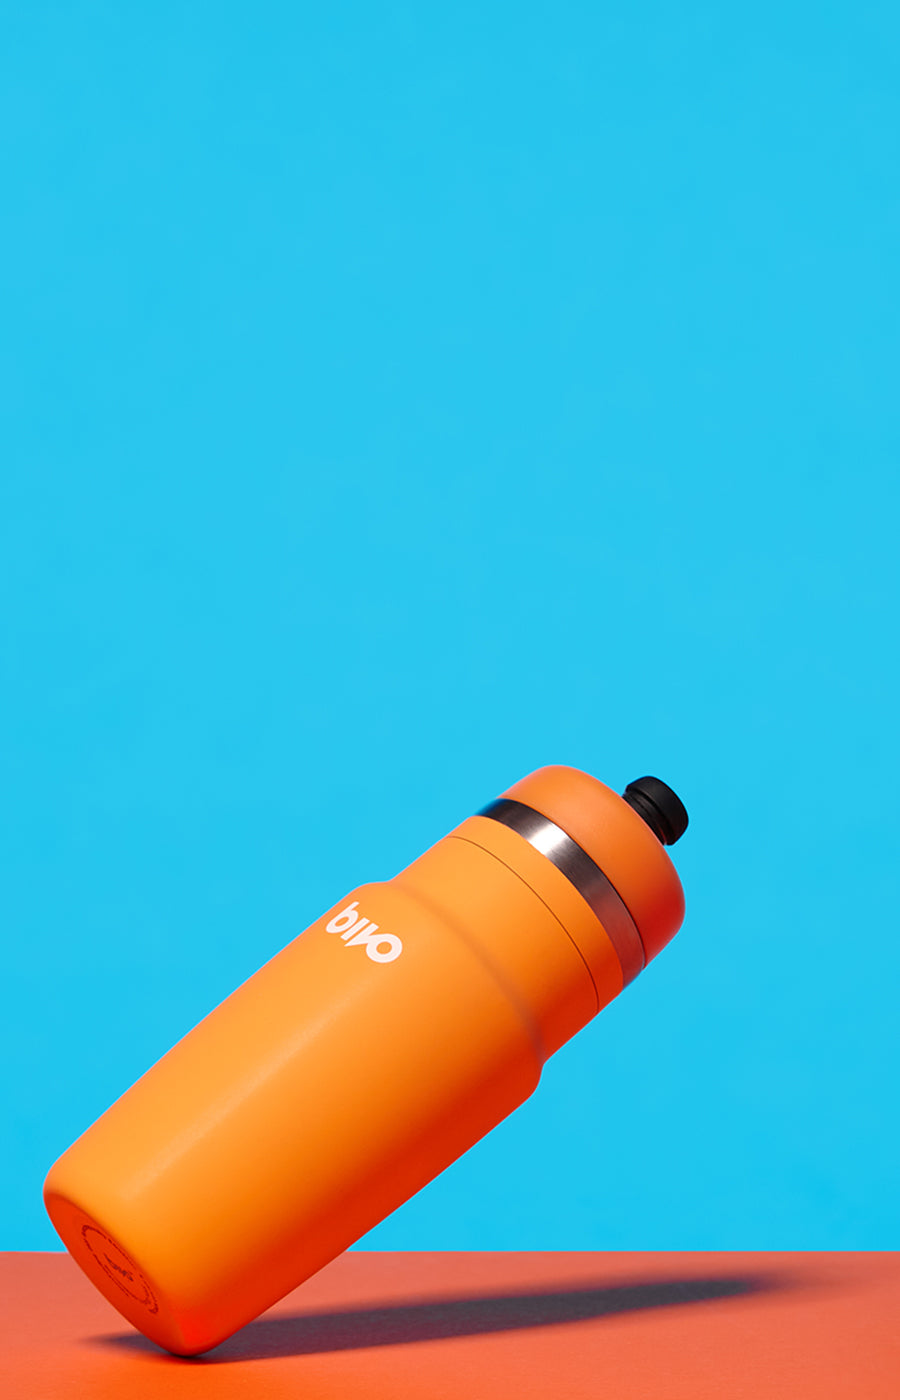 Bivo bottle nectarine mobile